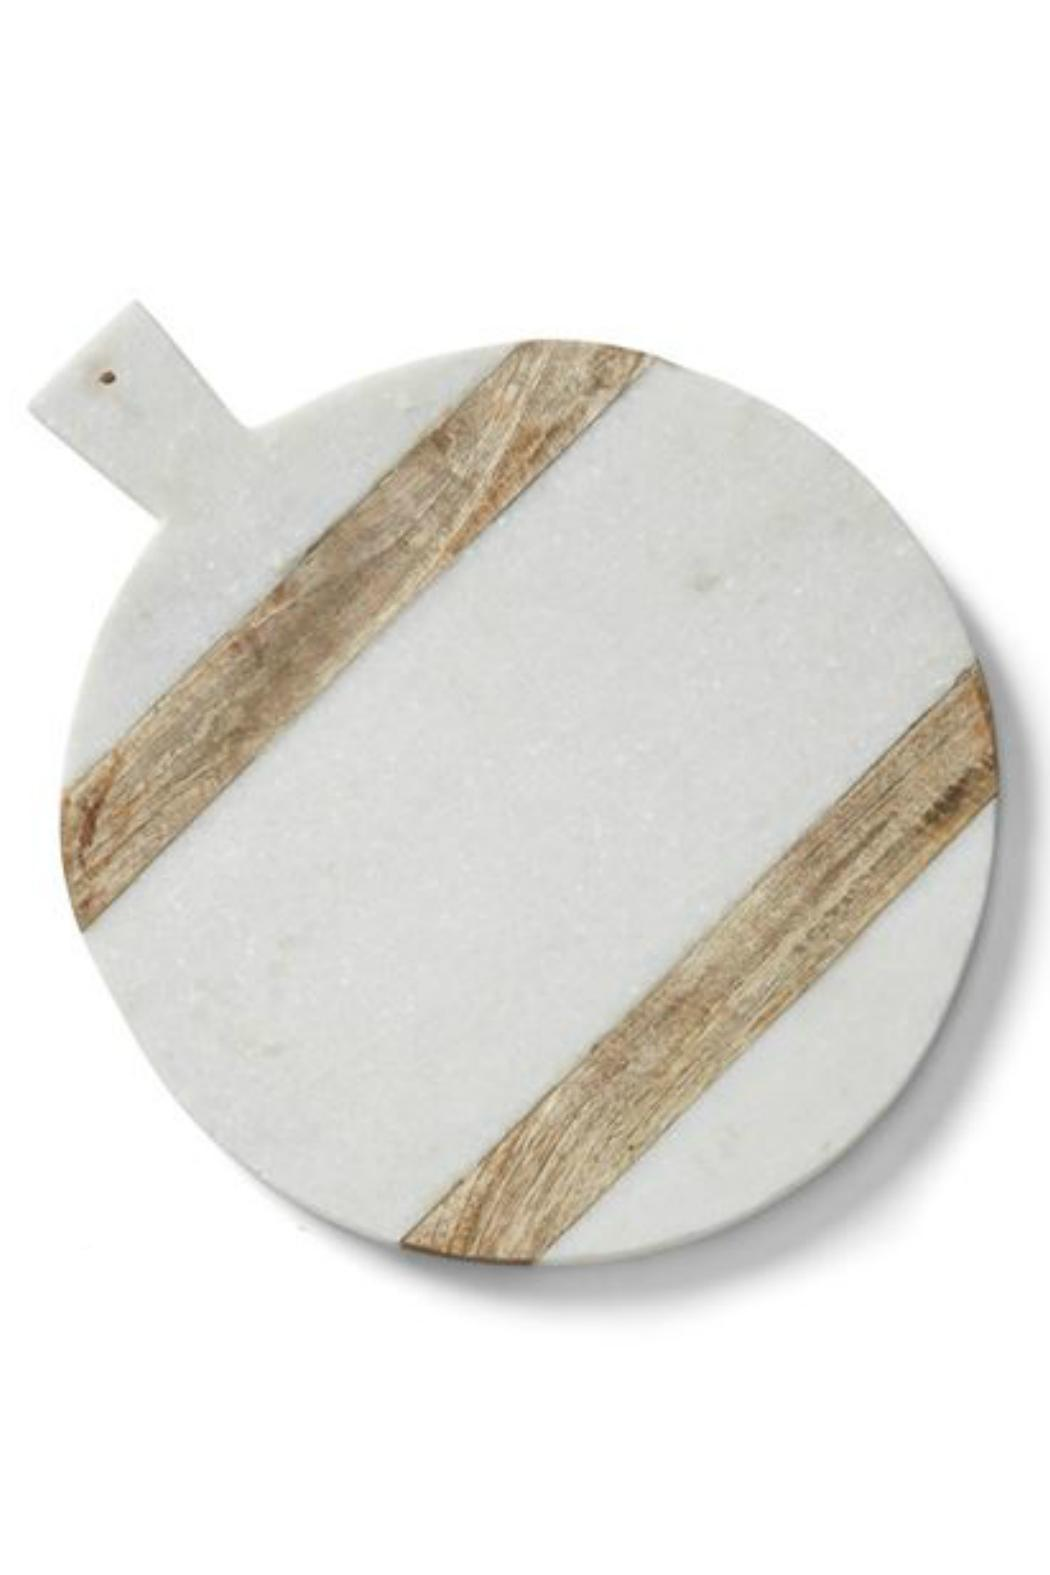 Mud Pie Marble Wood Cutting Board from New Hampshire by